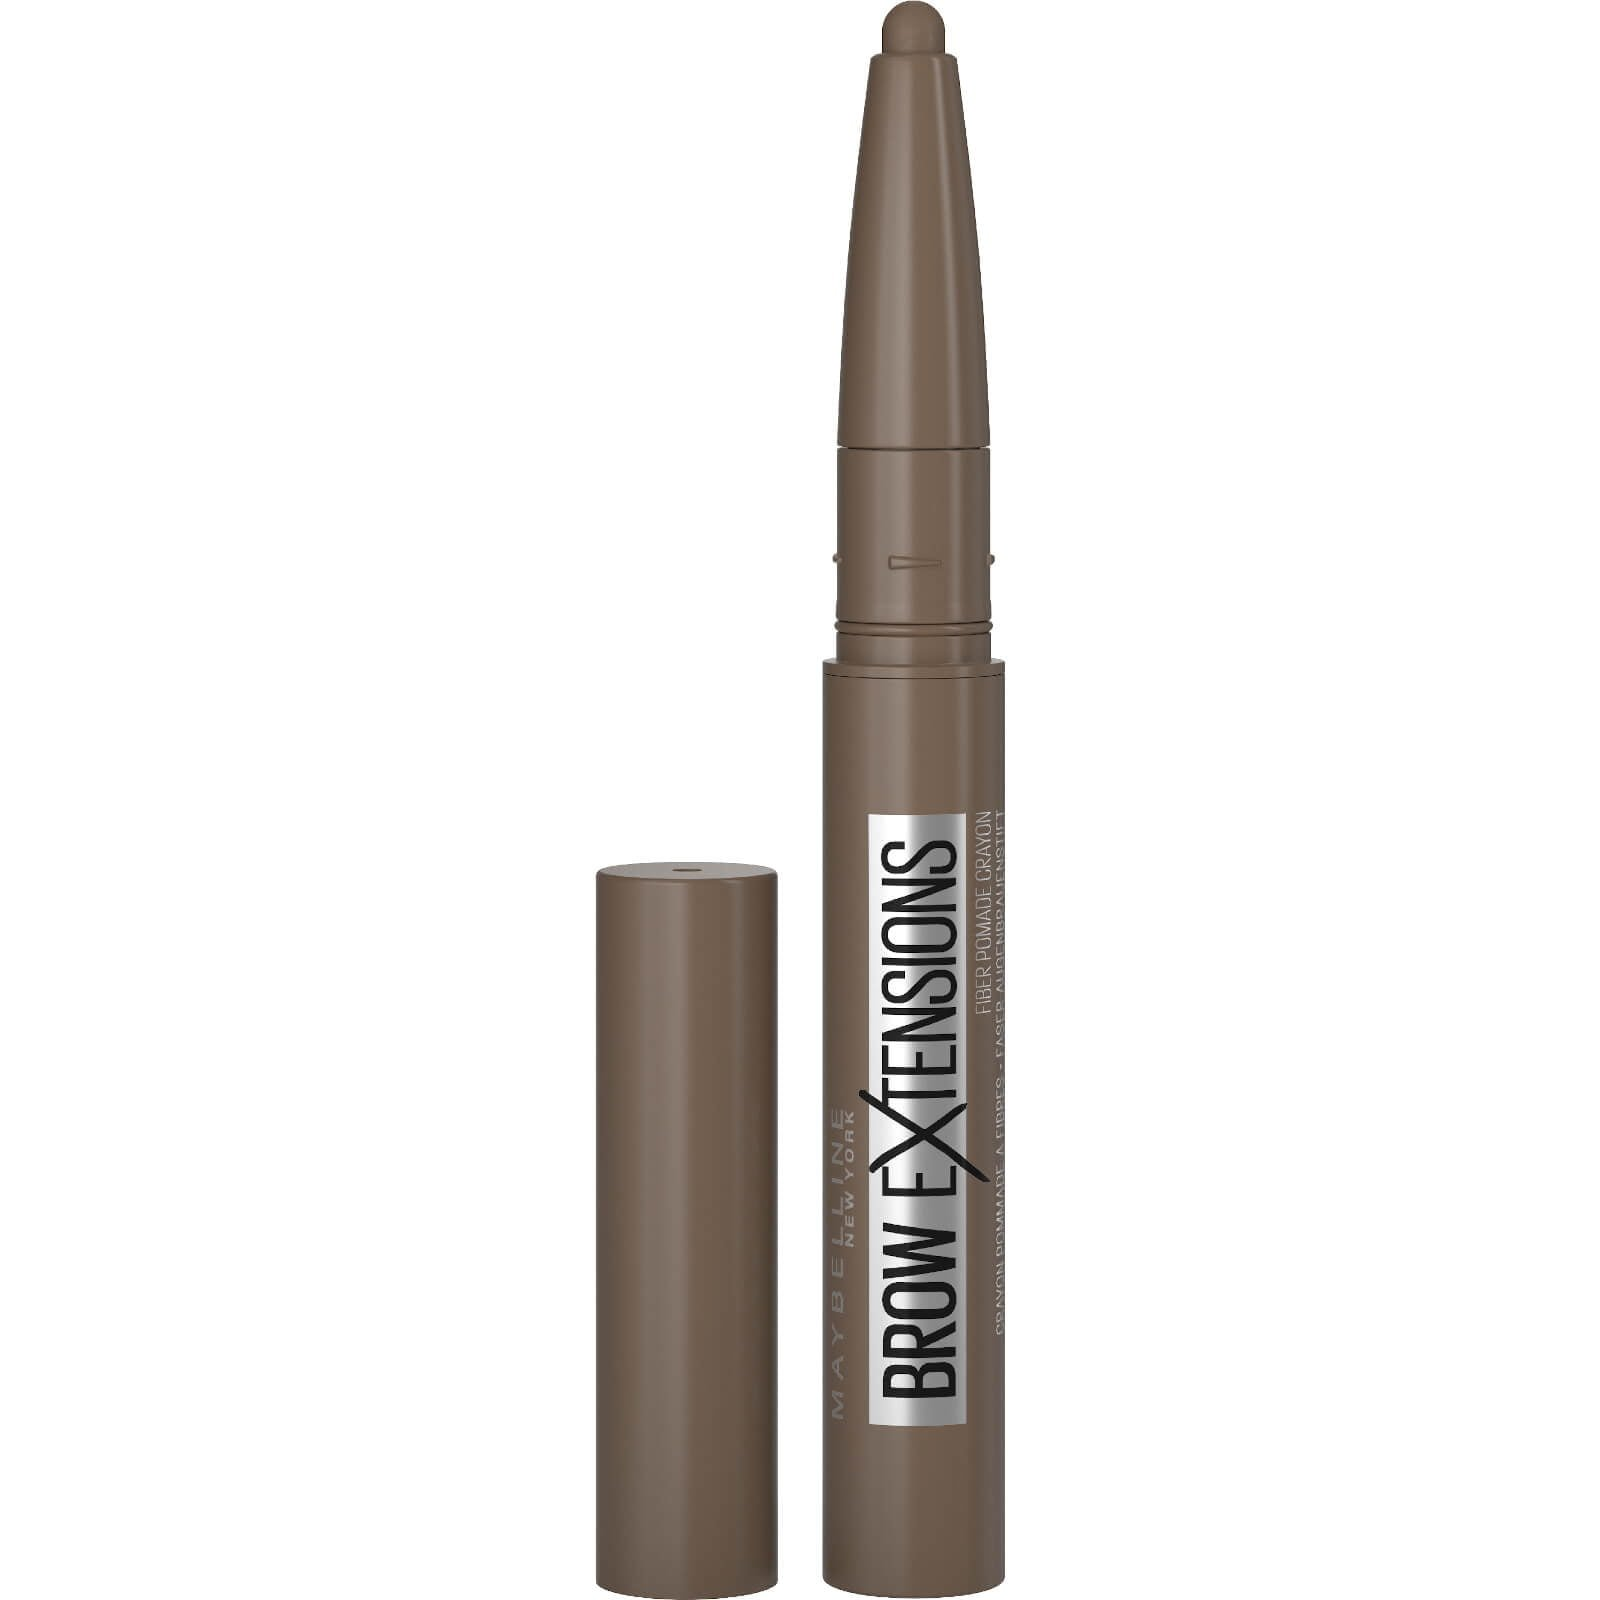 Maybelline Brow Extensions Fiber Pomade Crayon